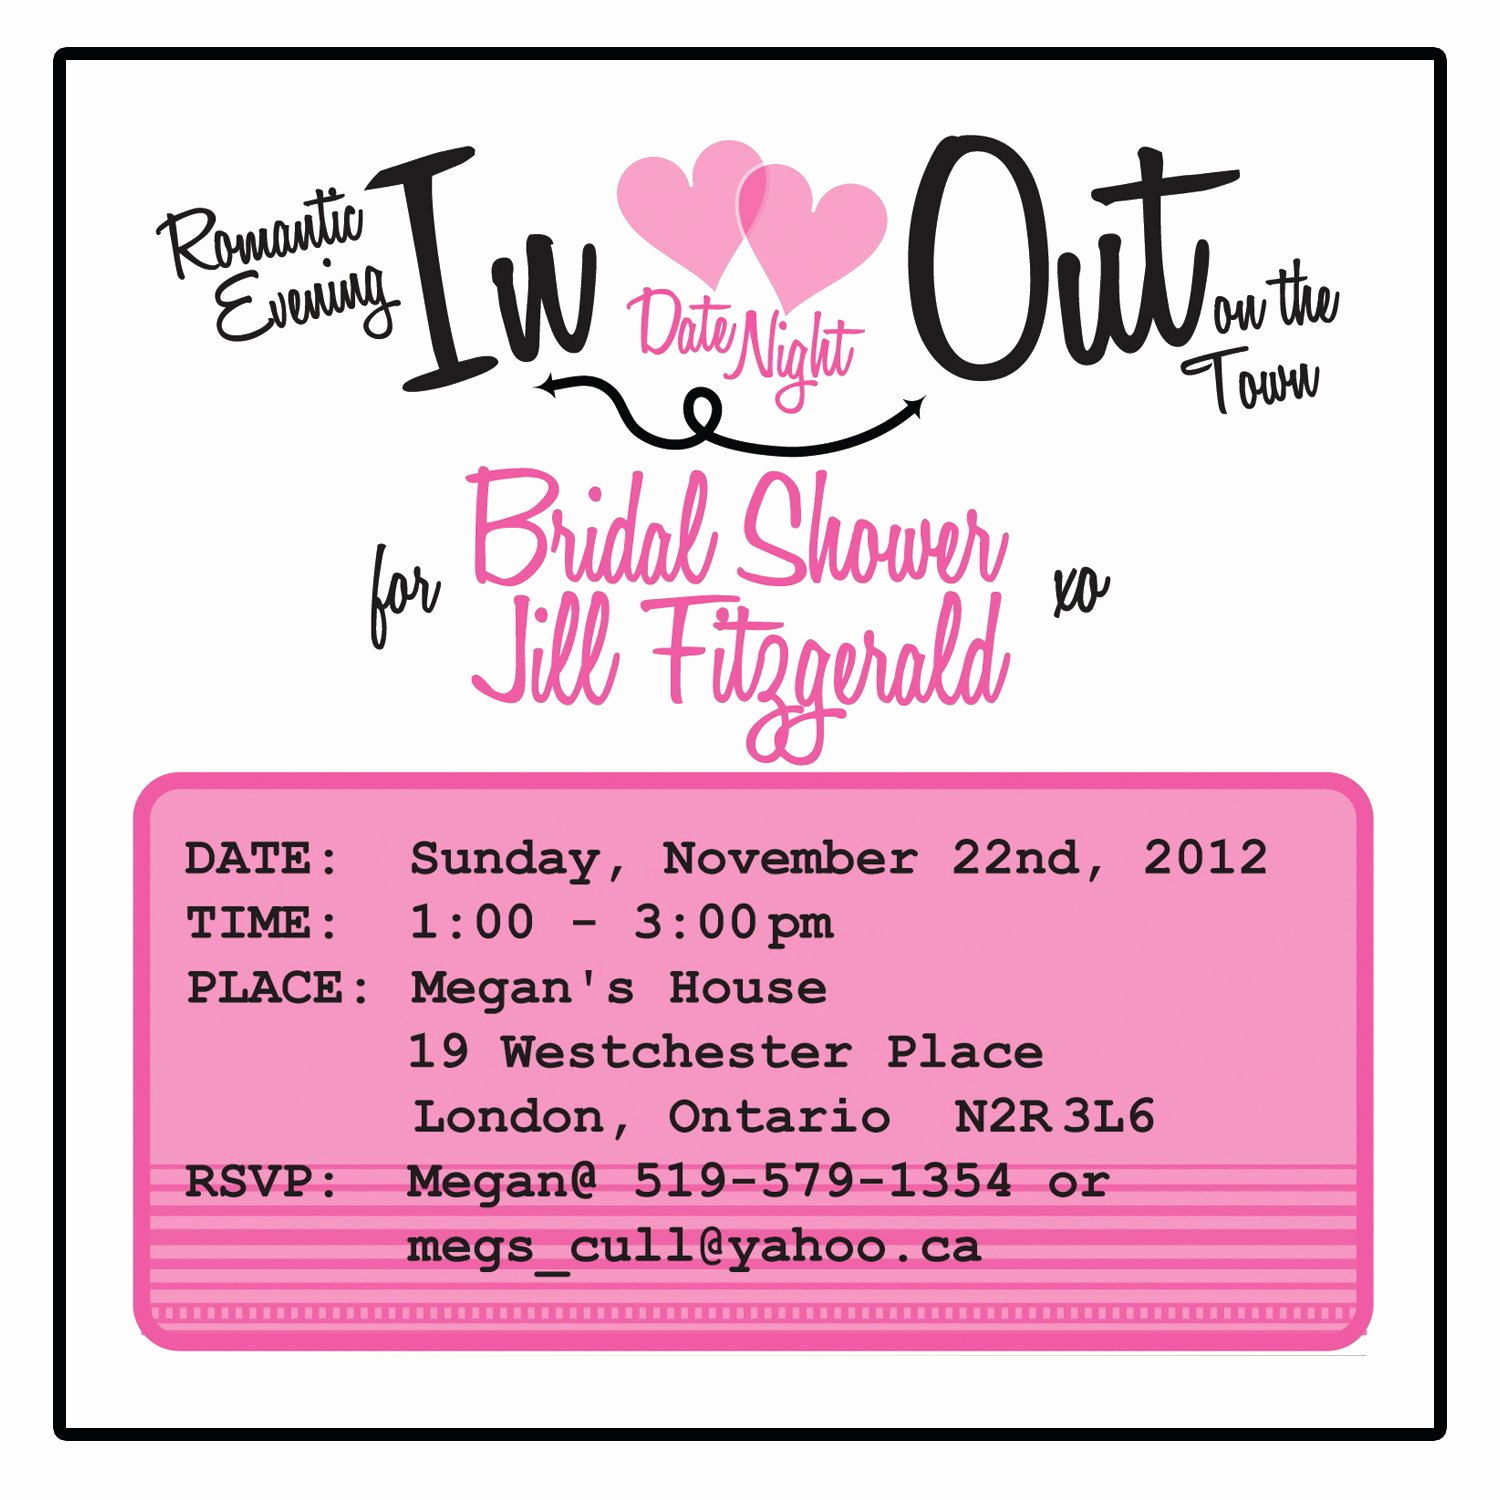 Card Shower Invitation Wording Fresh Bridal Shower Invitation Date Night theme 25 $50 00